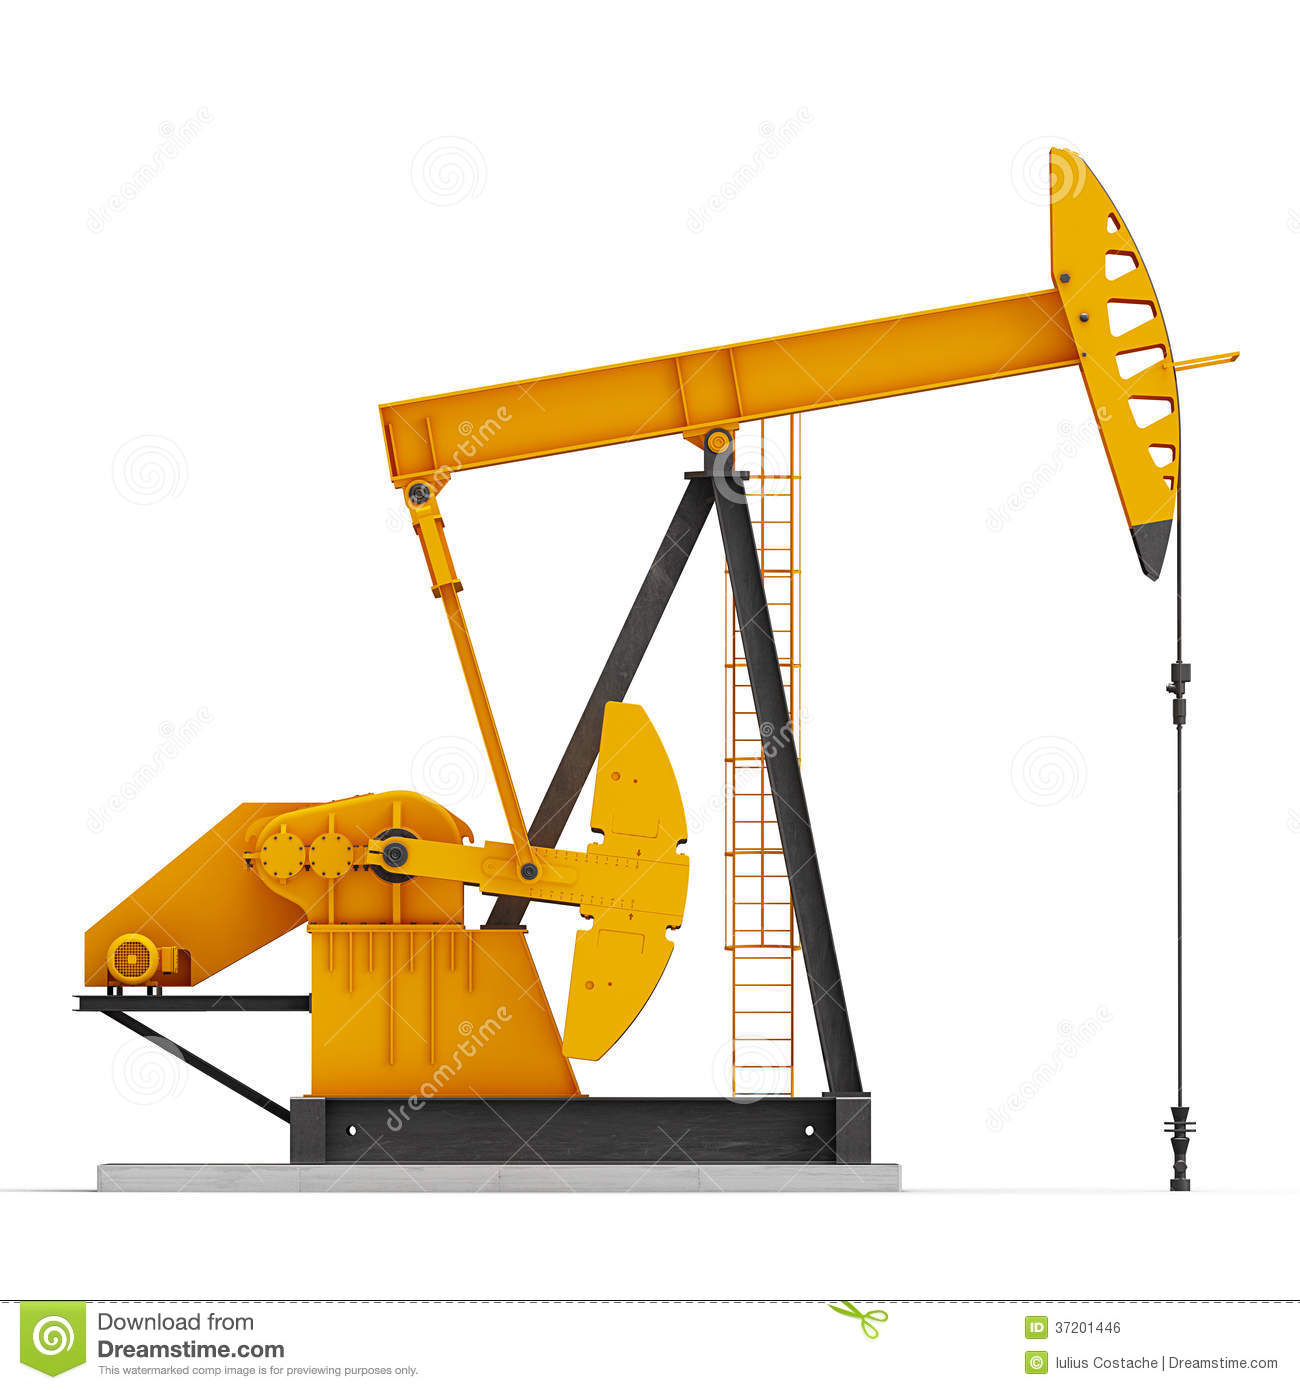 Oil Pump Royalty Free Stock Image - Image: 37201446